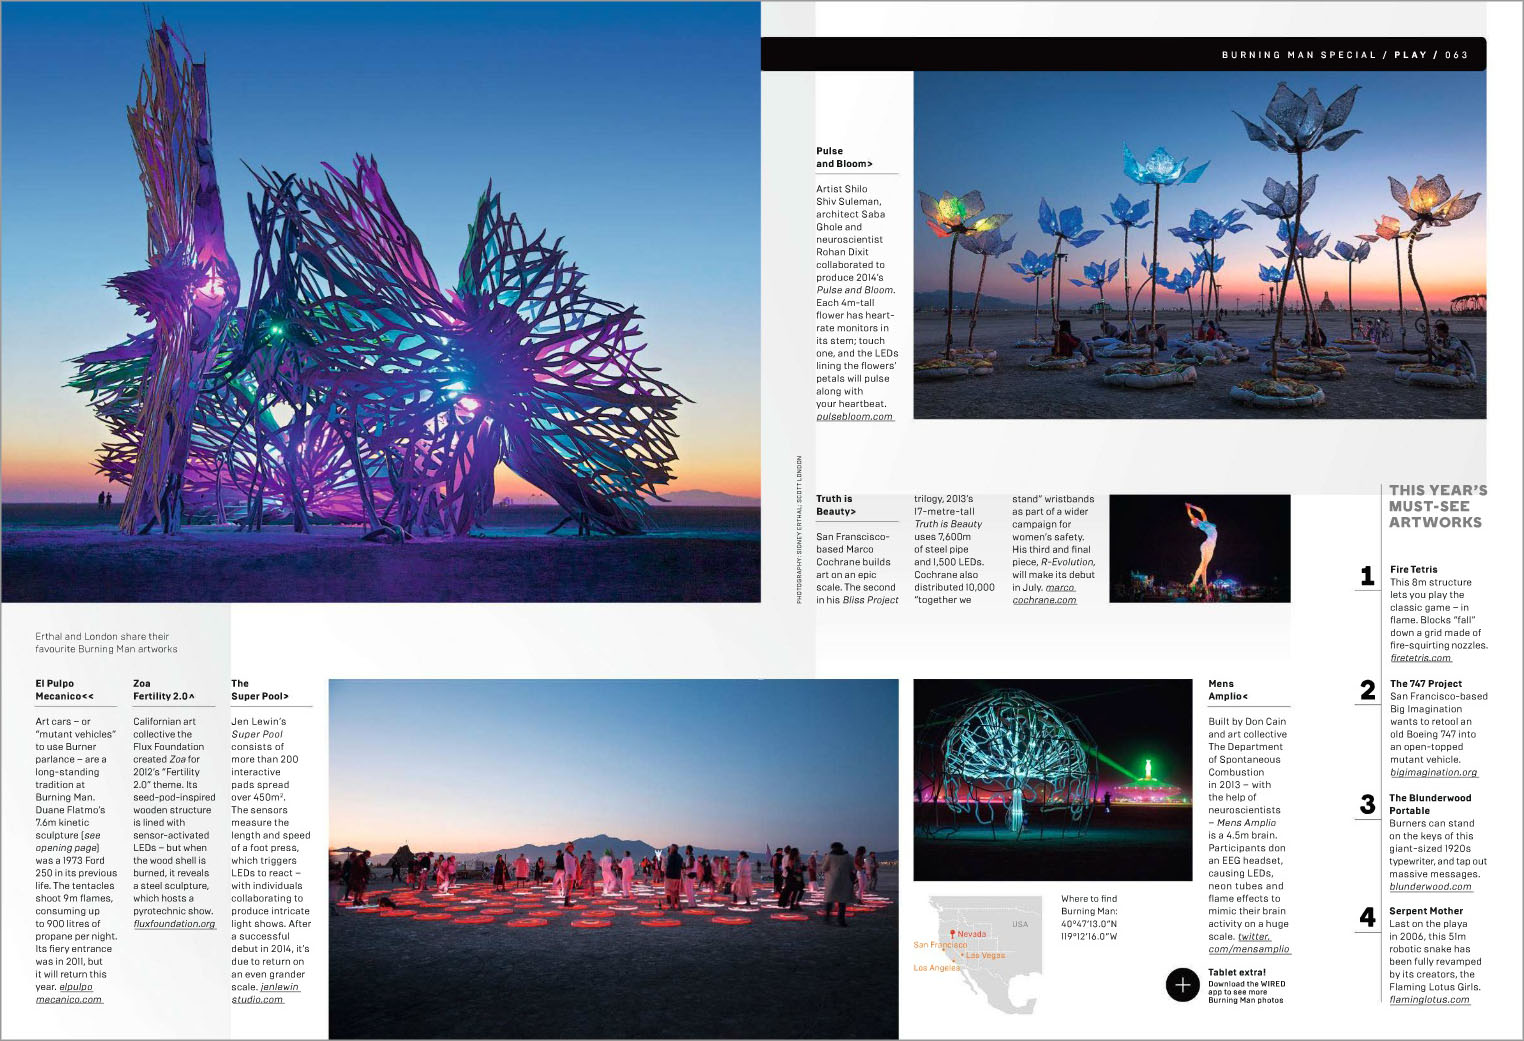 Wired\'s Preview of Burning Man 2015 – Scott London